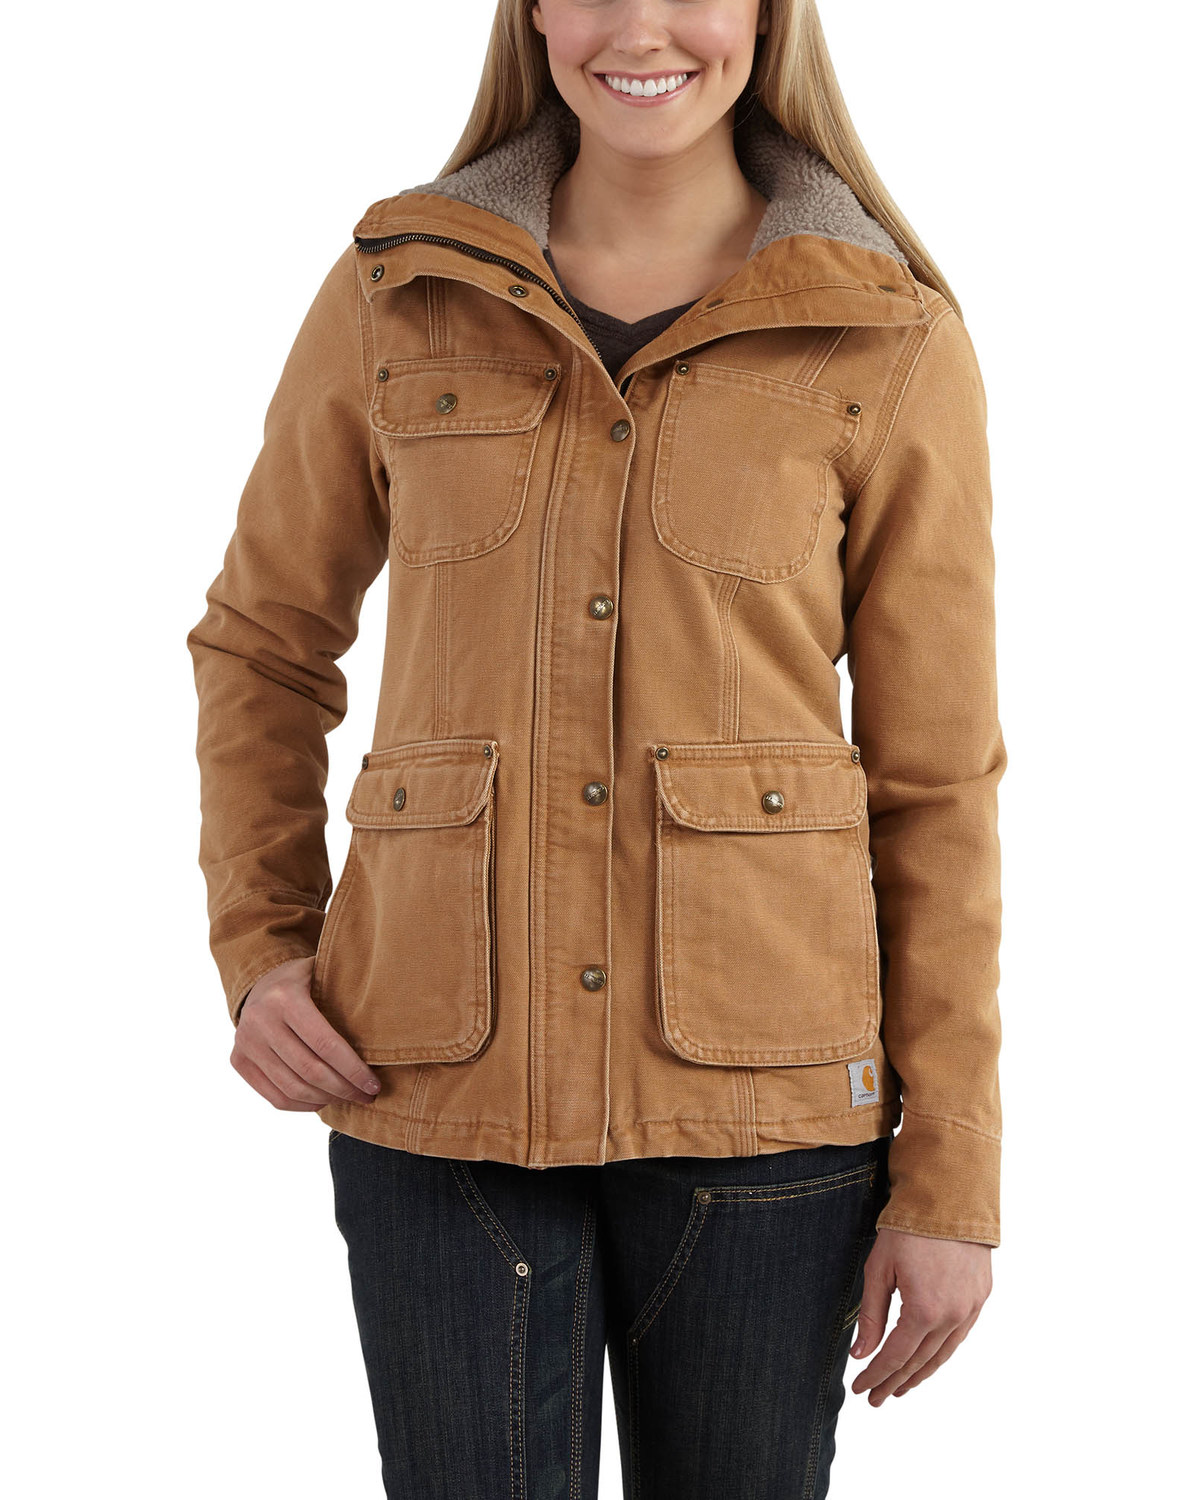 dcb28487f9 Zoomed Image Carhartt Women's Weathered Duck Wesley Coat, Carhartt Brown,  ...